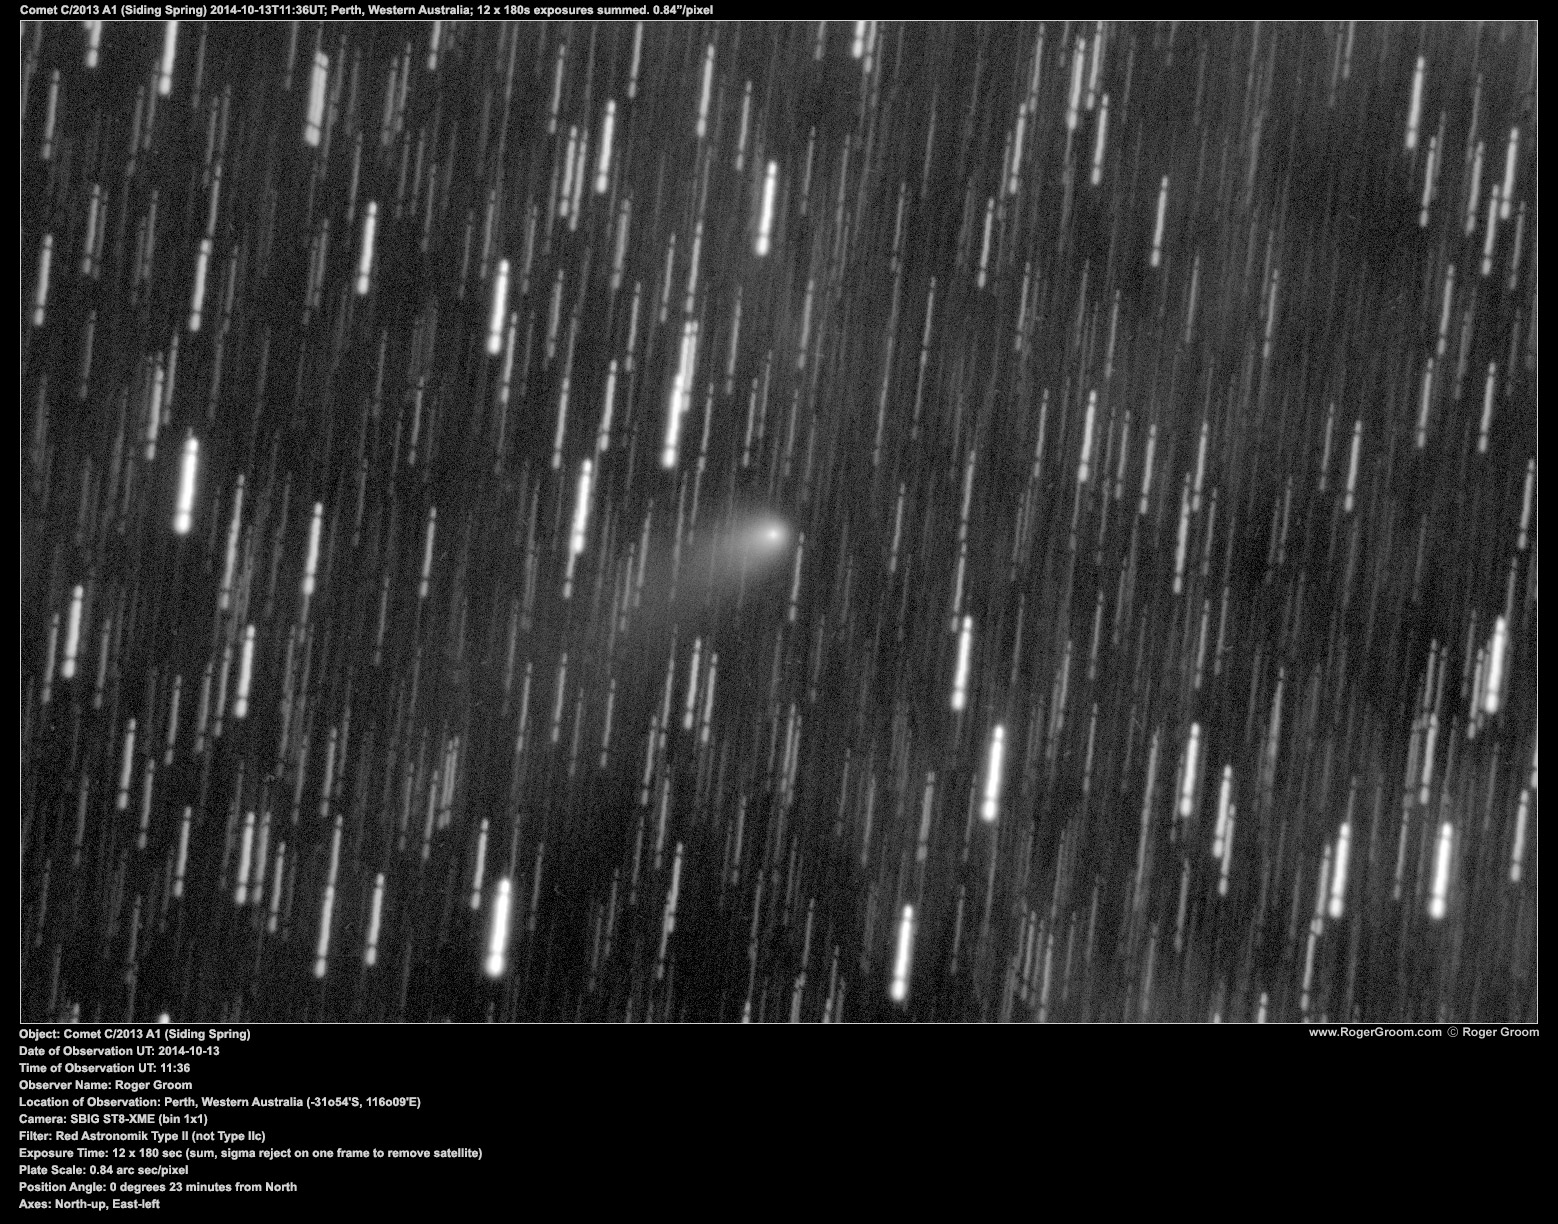 Object: Comet C/2013 A1 (Siding Spring) Date of Observation UT: 2014-10-13 Time of Observation UT: 11:36 Observer Name: Roger Groom Location of Observation: Perth, Western Australia (-31o54'S, 116o09'E) Camera: SBIG ST8-XME (bin 1x1) Filter: Red Astronomik Type II (not Type IIc) Exposure Time: 12 x 180 sec (sum, sigma reject on one frame to remove satellite) Plate Scale: 0.84 arc sec/pixel Position Angle: 0 degrees 23 minutes from North Axes: North-up, East-left